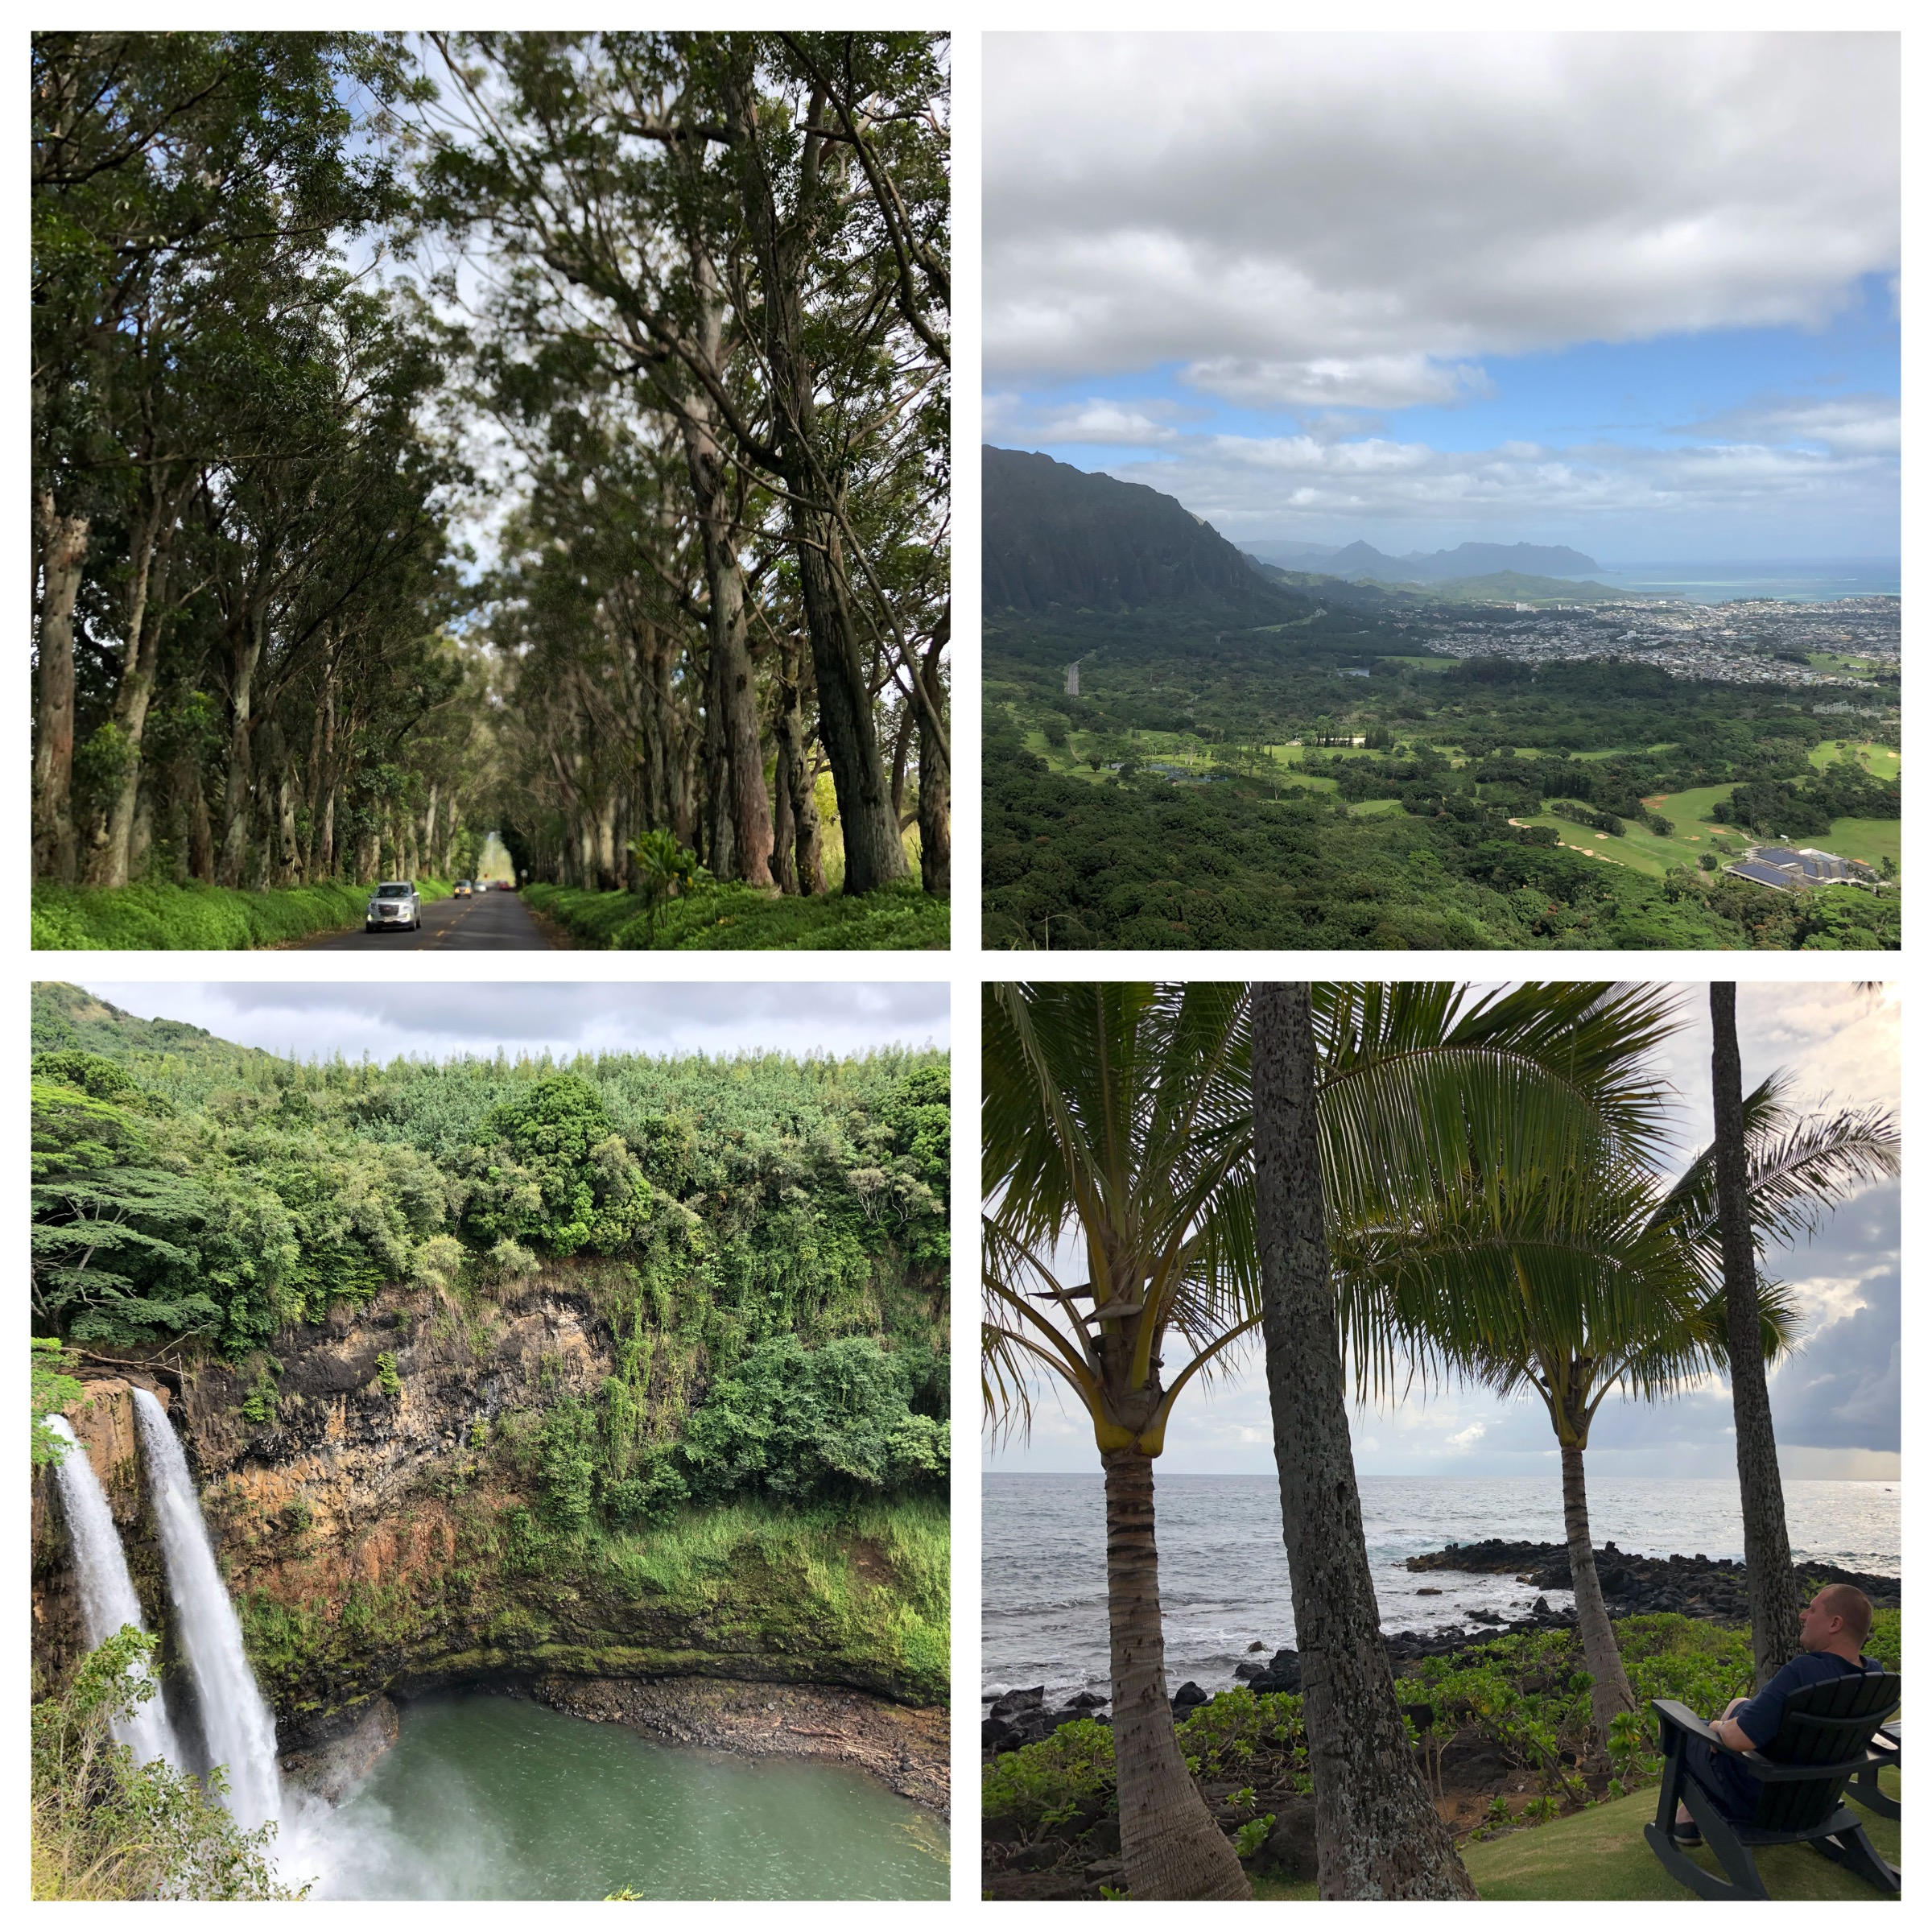 Top left and clockwise; the Tunnel of Trees, view from Nu'uanu Pali, Christoph's favourite spot at Poipu and the Wailua Waterfalls.